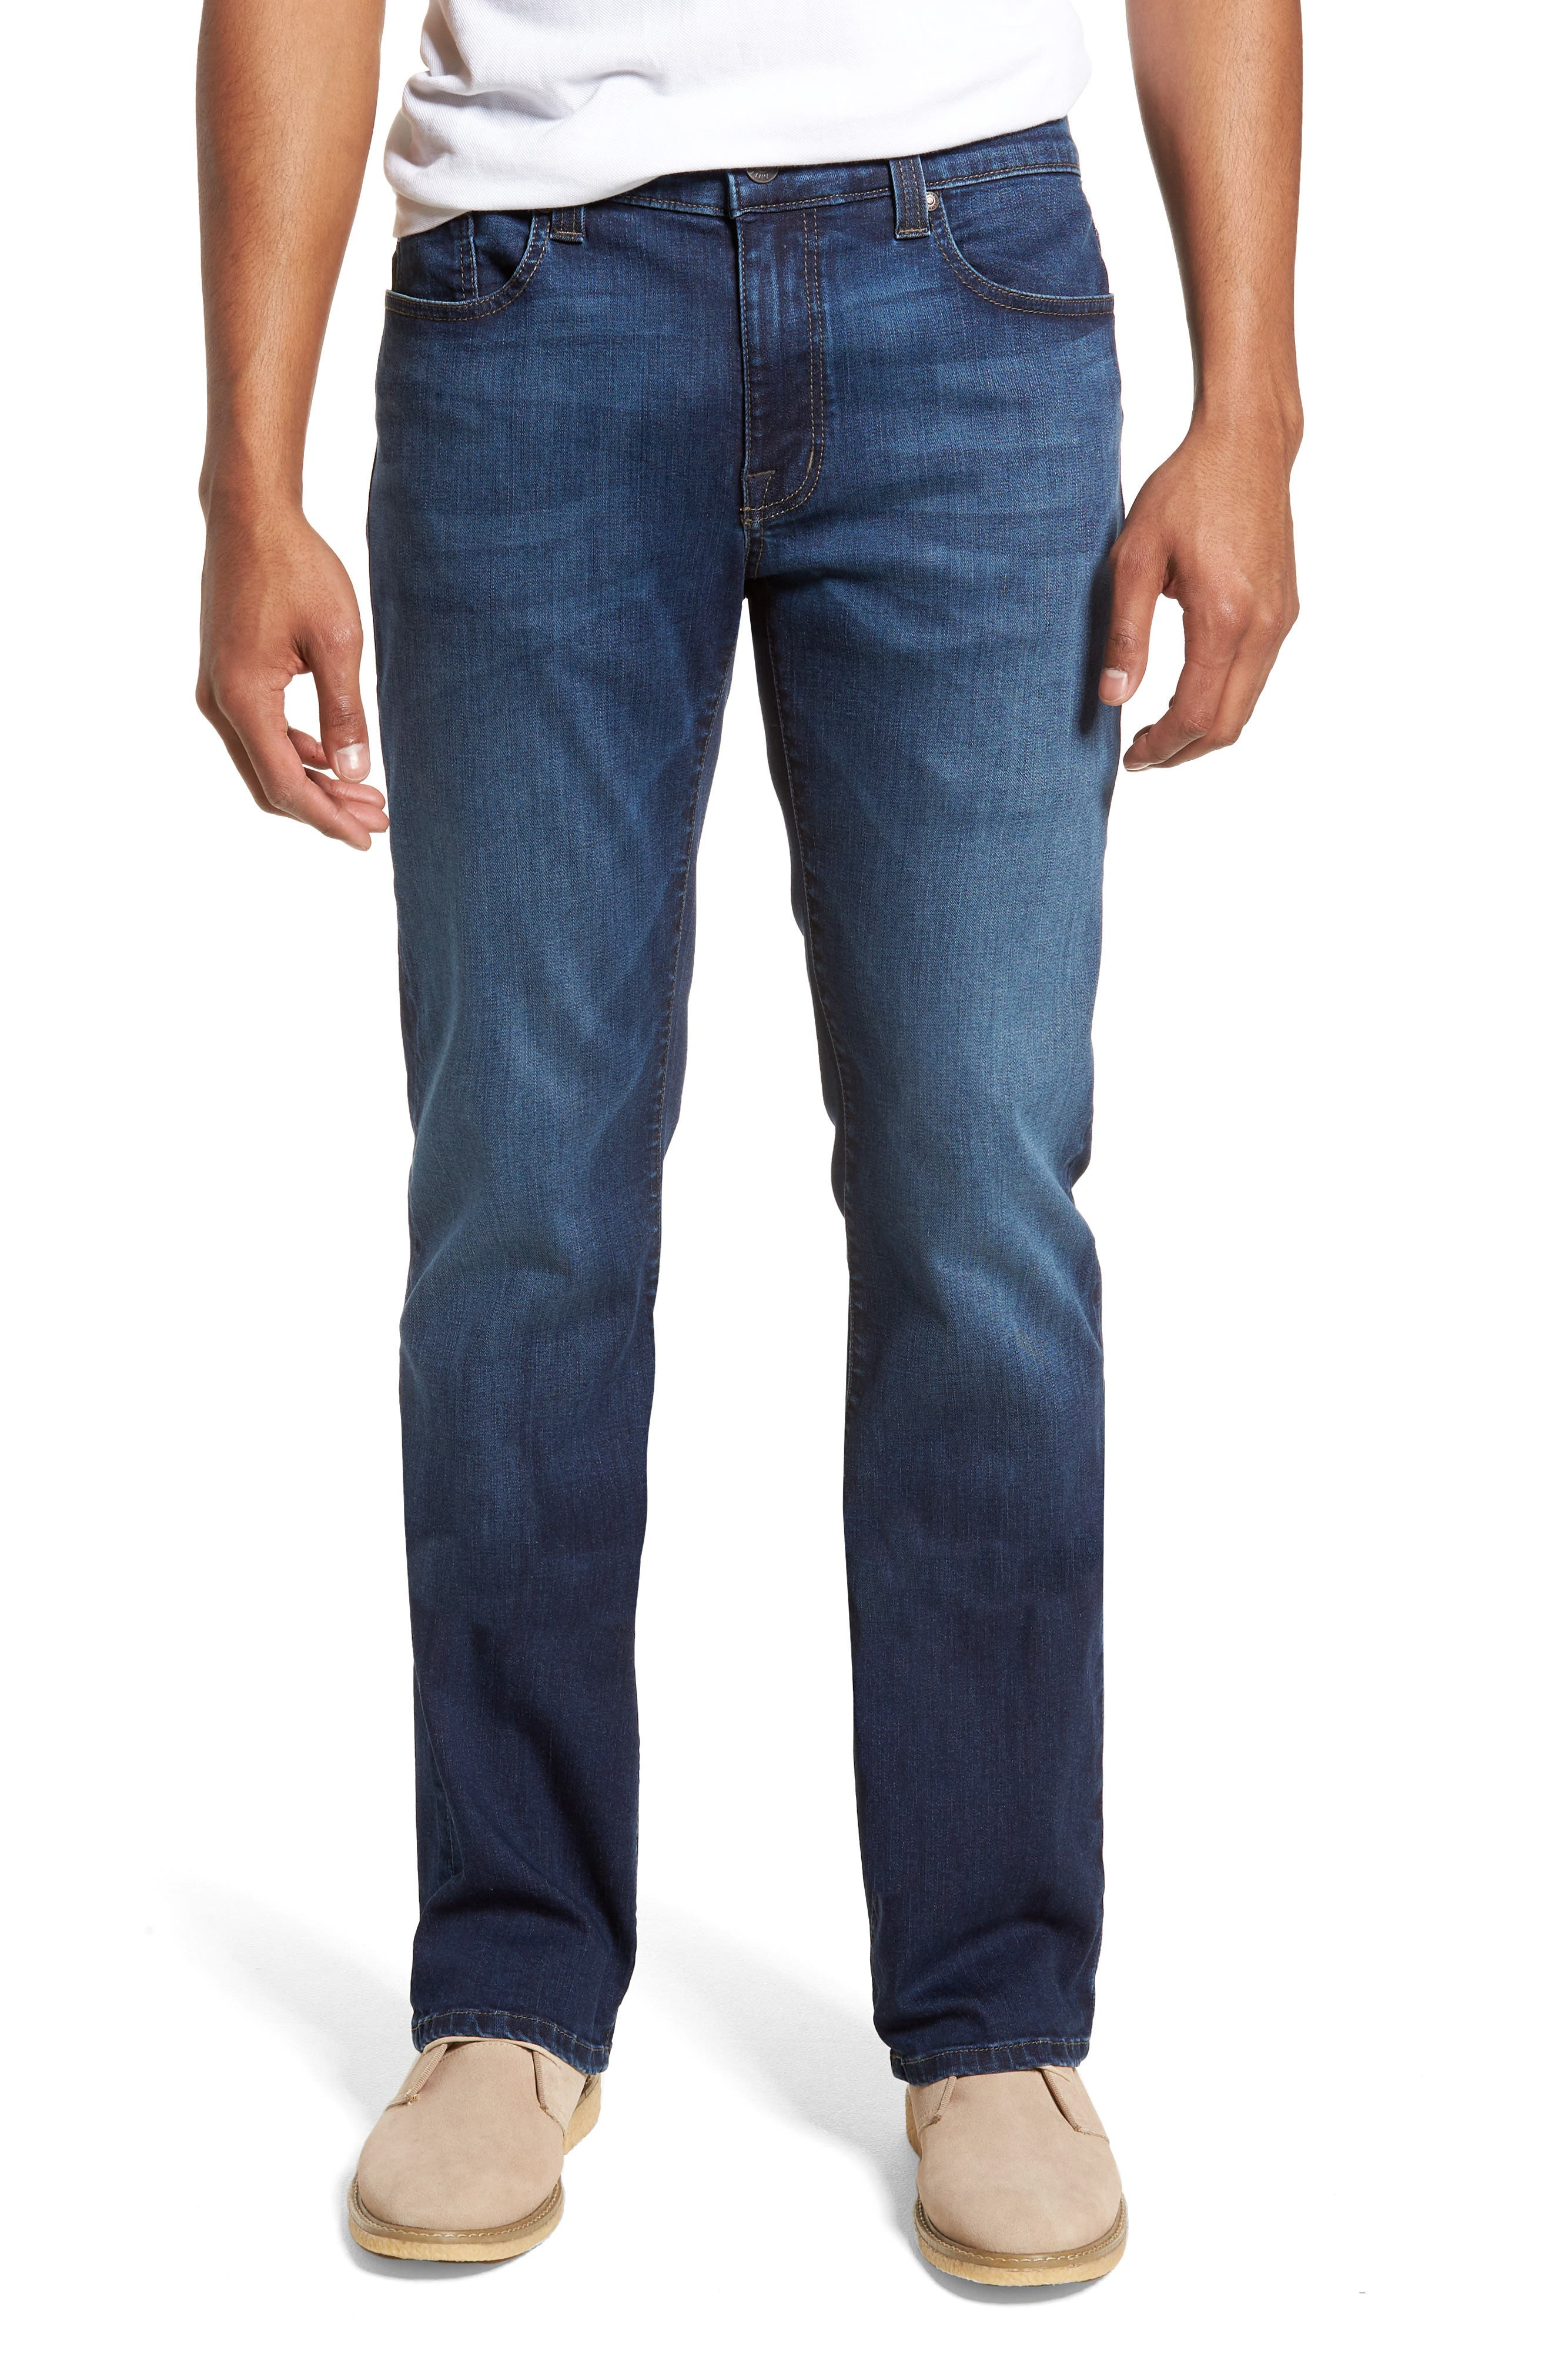 50-11 Relaxed Fit Jeans,                             Main thumbnail 1, color,                             Cornell Blue